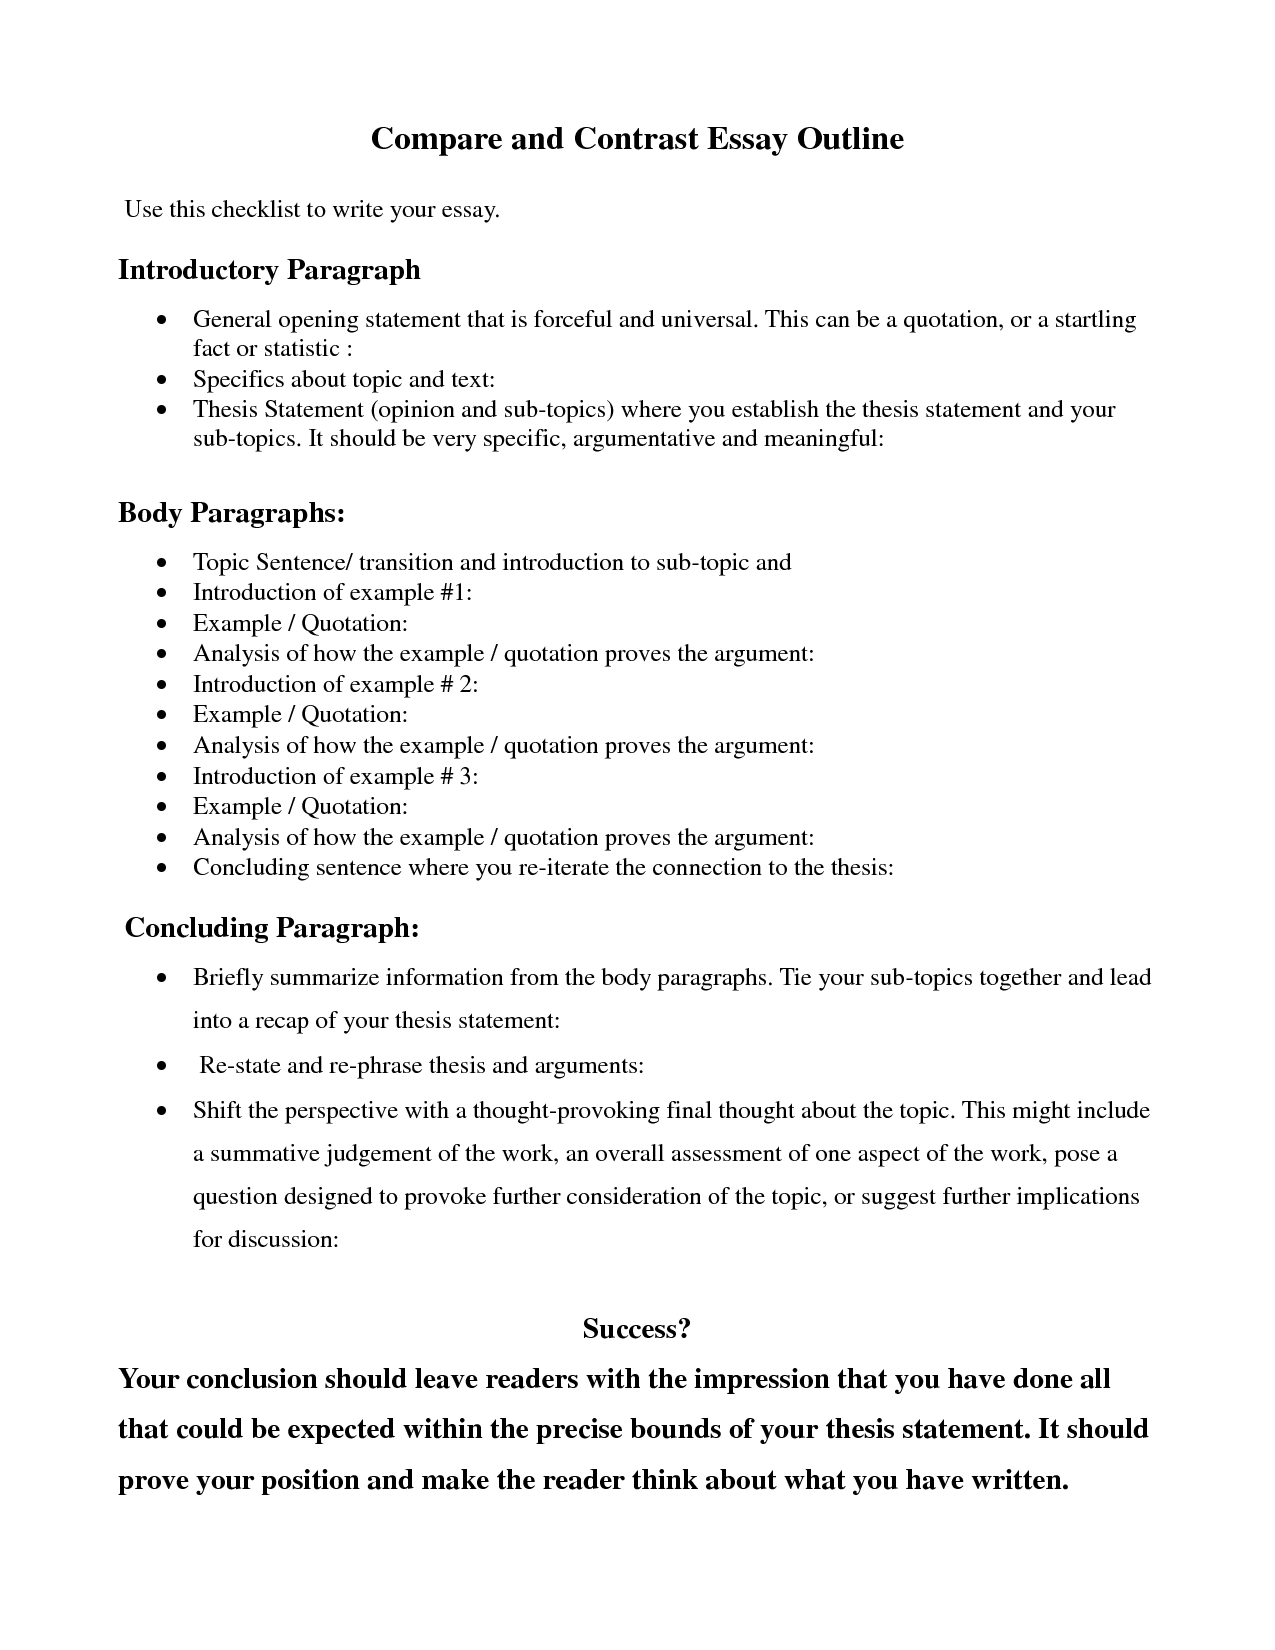 10 Best Ideas For Compare And Contrast Essay compare contrast essay outline google search education 1 2020